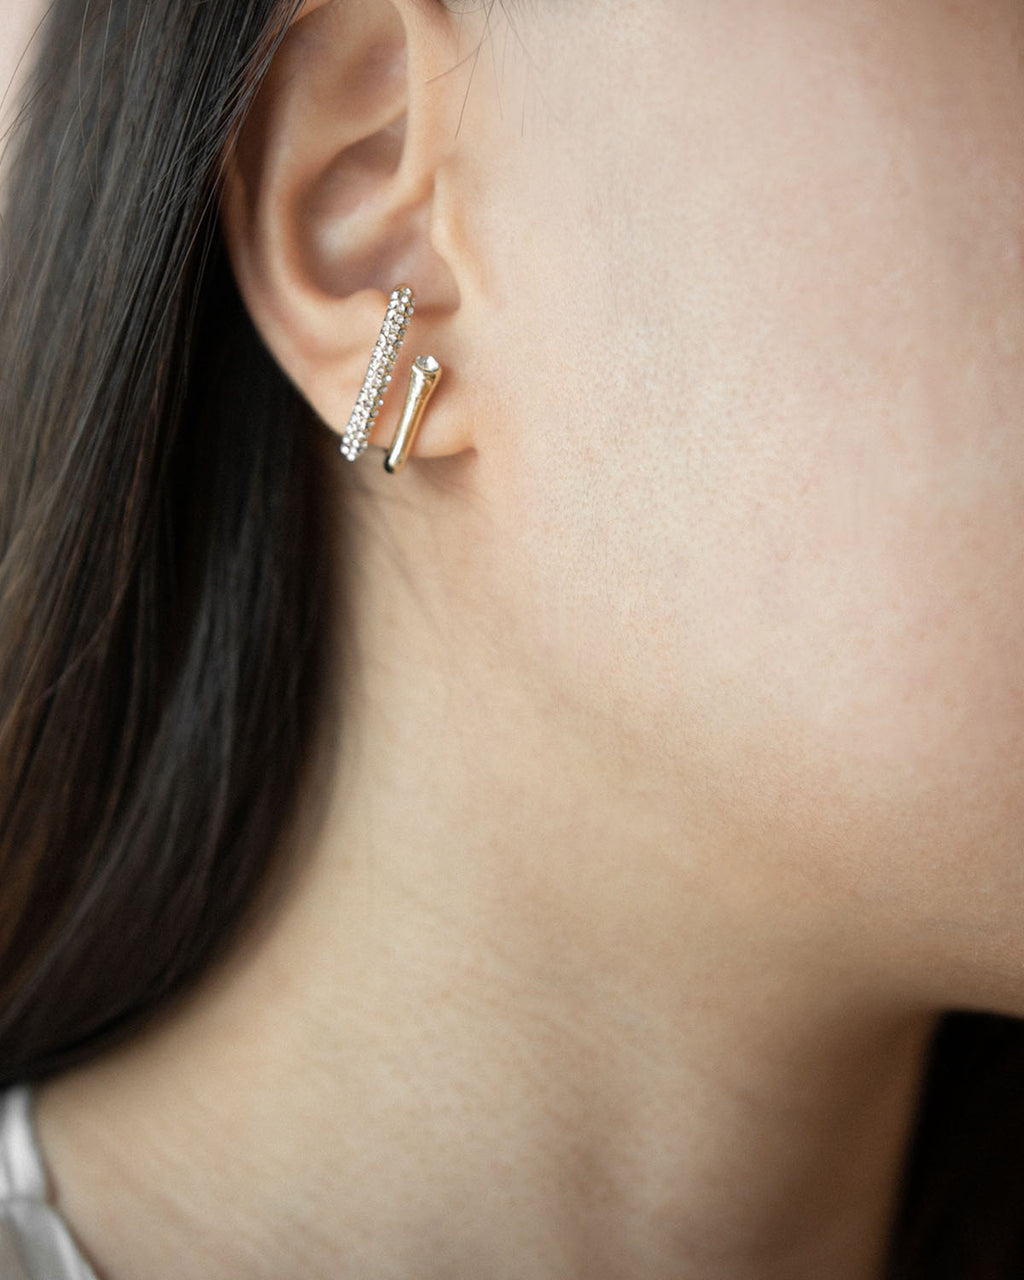 Get the illusion of two piercings with the Duet Suspender Earrings @thehexad